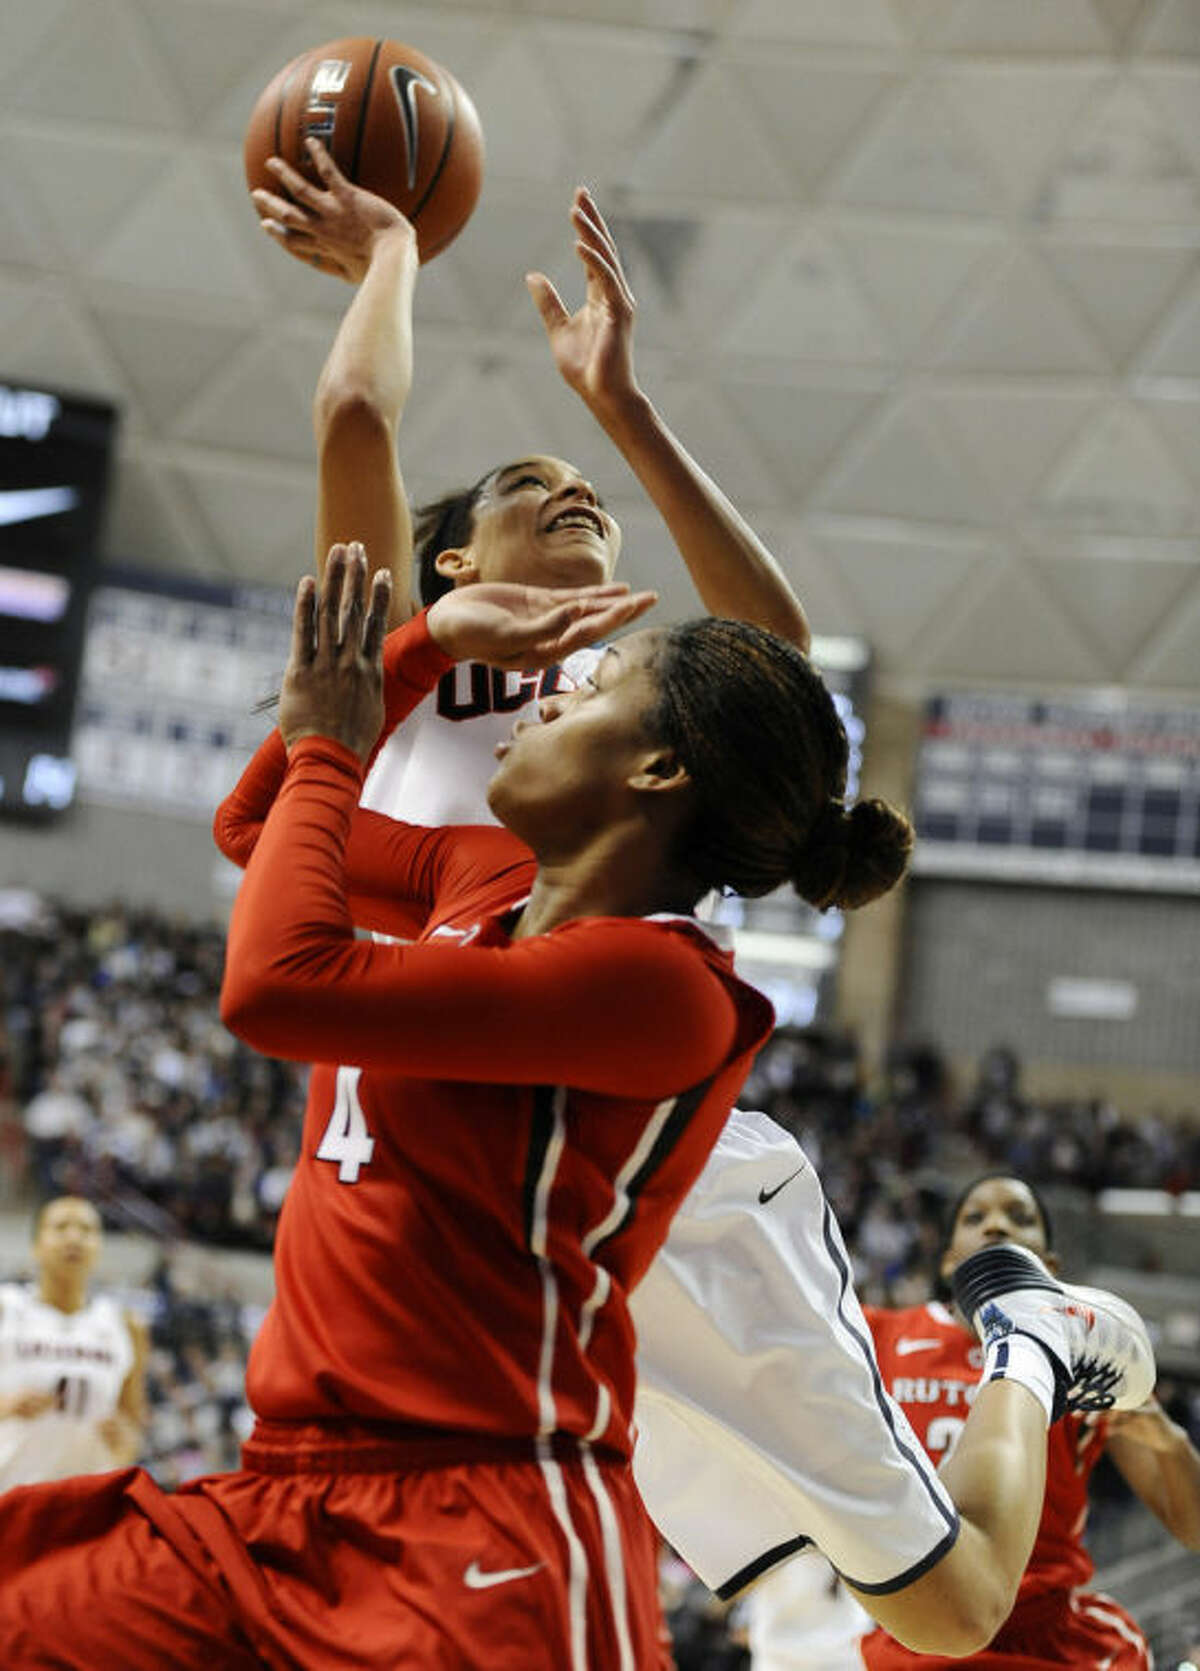 Connecticut's Bria Hartley, back, is fouled by Rutgers' Briyona Canty during the first half an NCAA college basketball game, Saturday, March 1, 2014, in Storrs, Conn. (AP Photo/Jessica Hill)